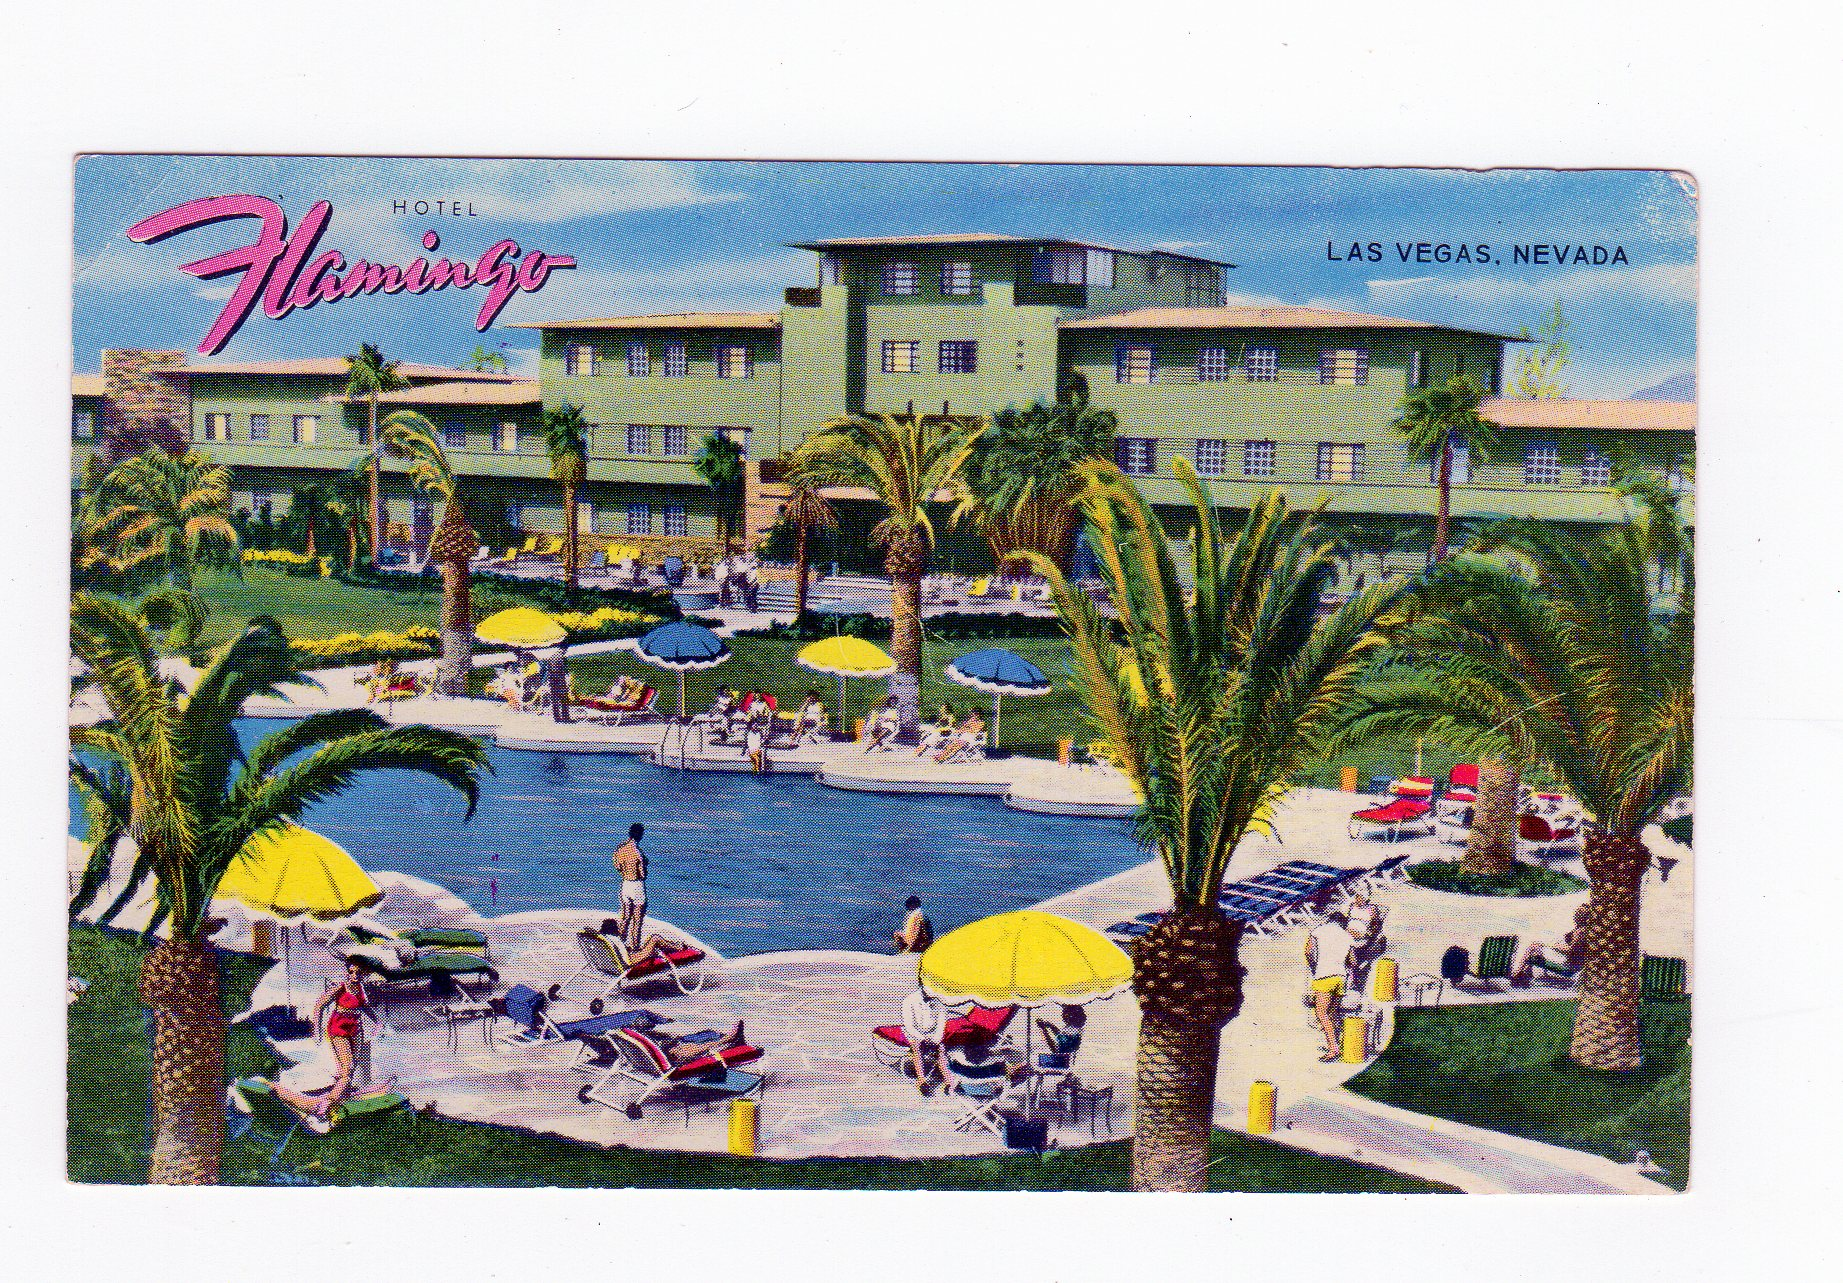 Flamingo Las Vegas Kid Pool Chrome Postcard Hotel Flamingo Las Vegas Nevada Pool